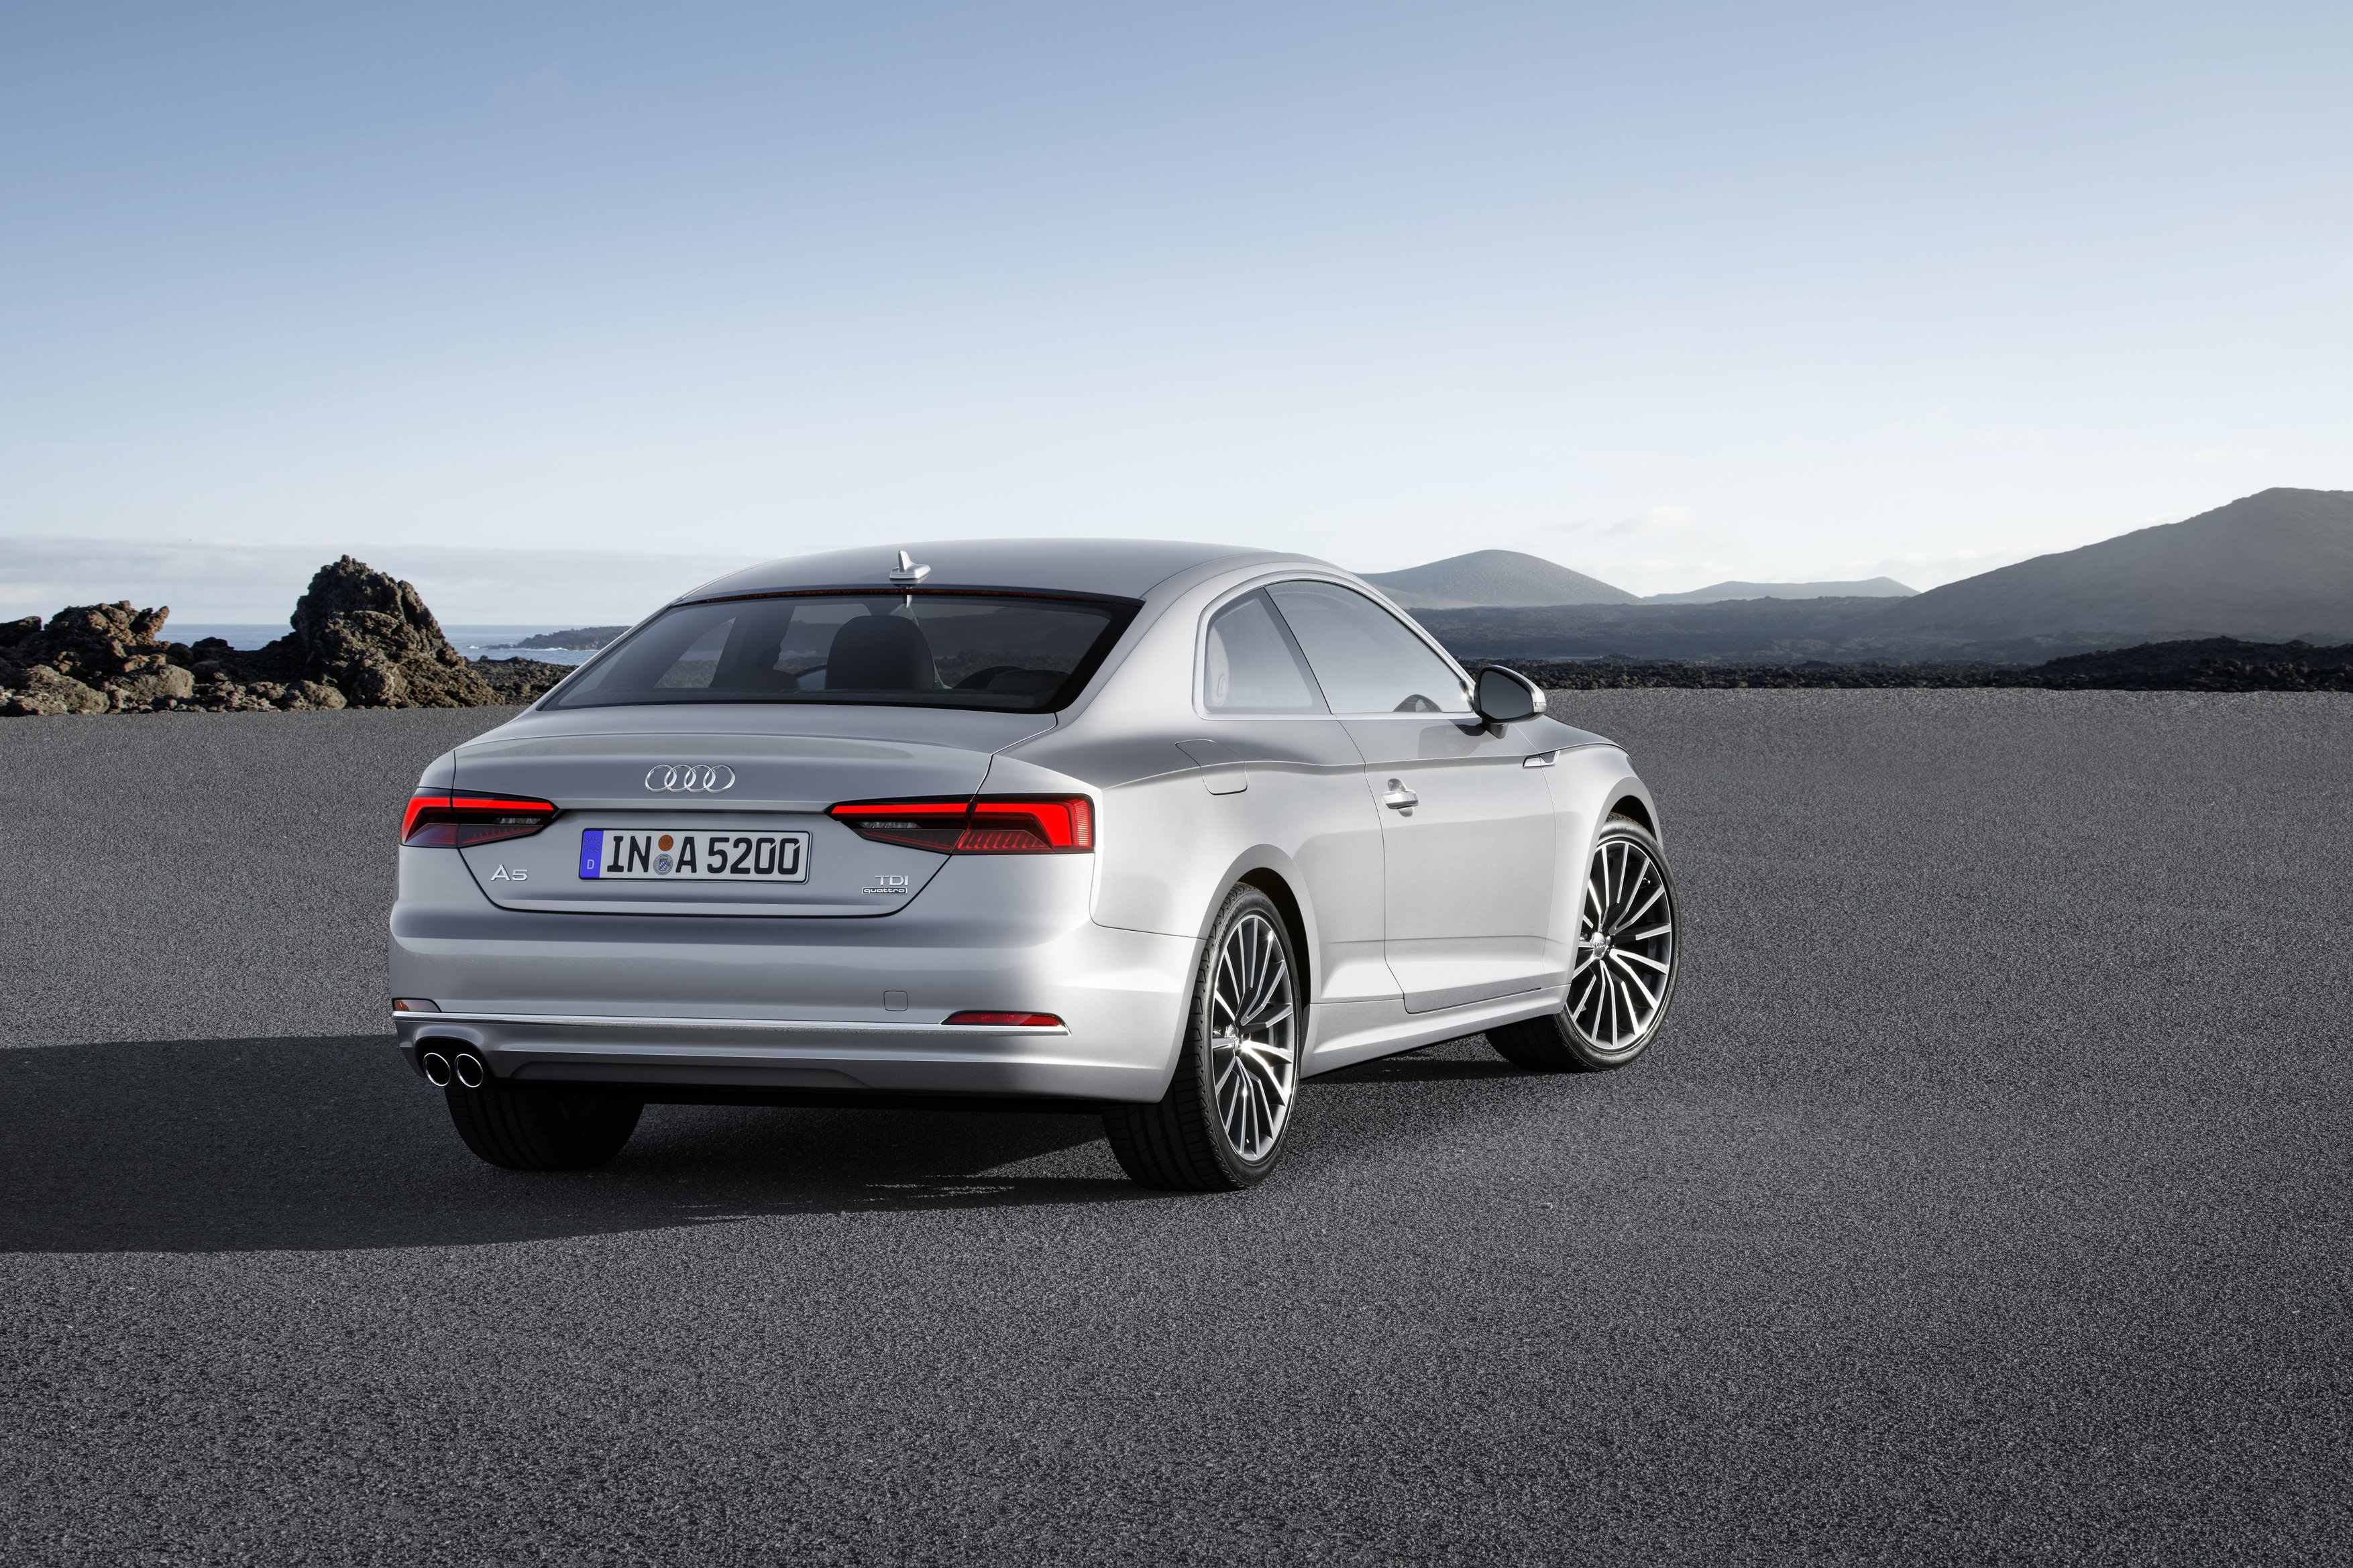 test audi a5 coup 2016 encore plus sportive link2fleet for a smarter mobility. Black Bedroom Furniture Sets. Home Design Ideas